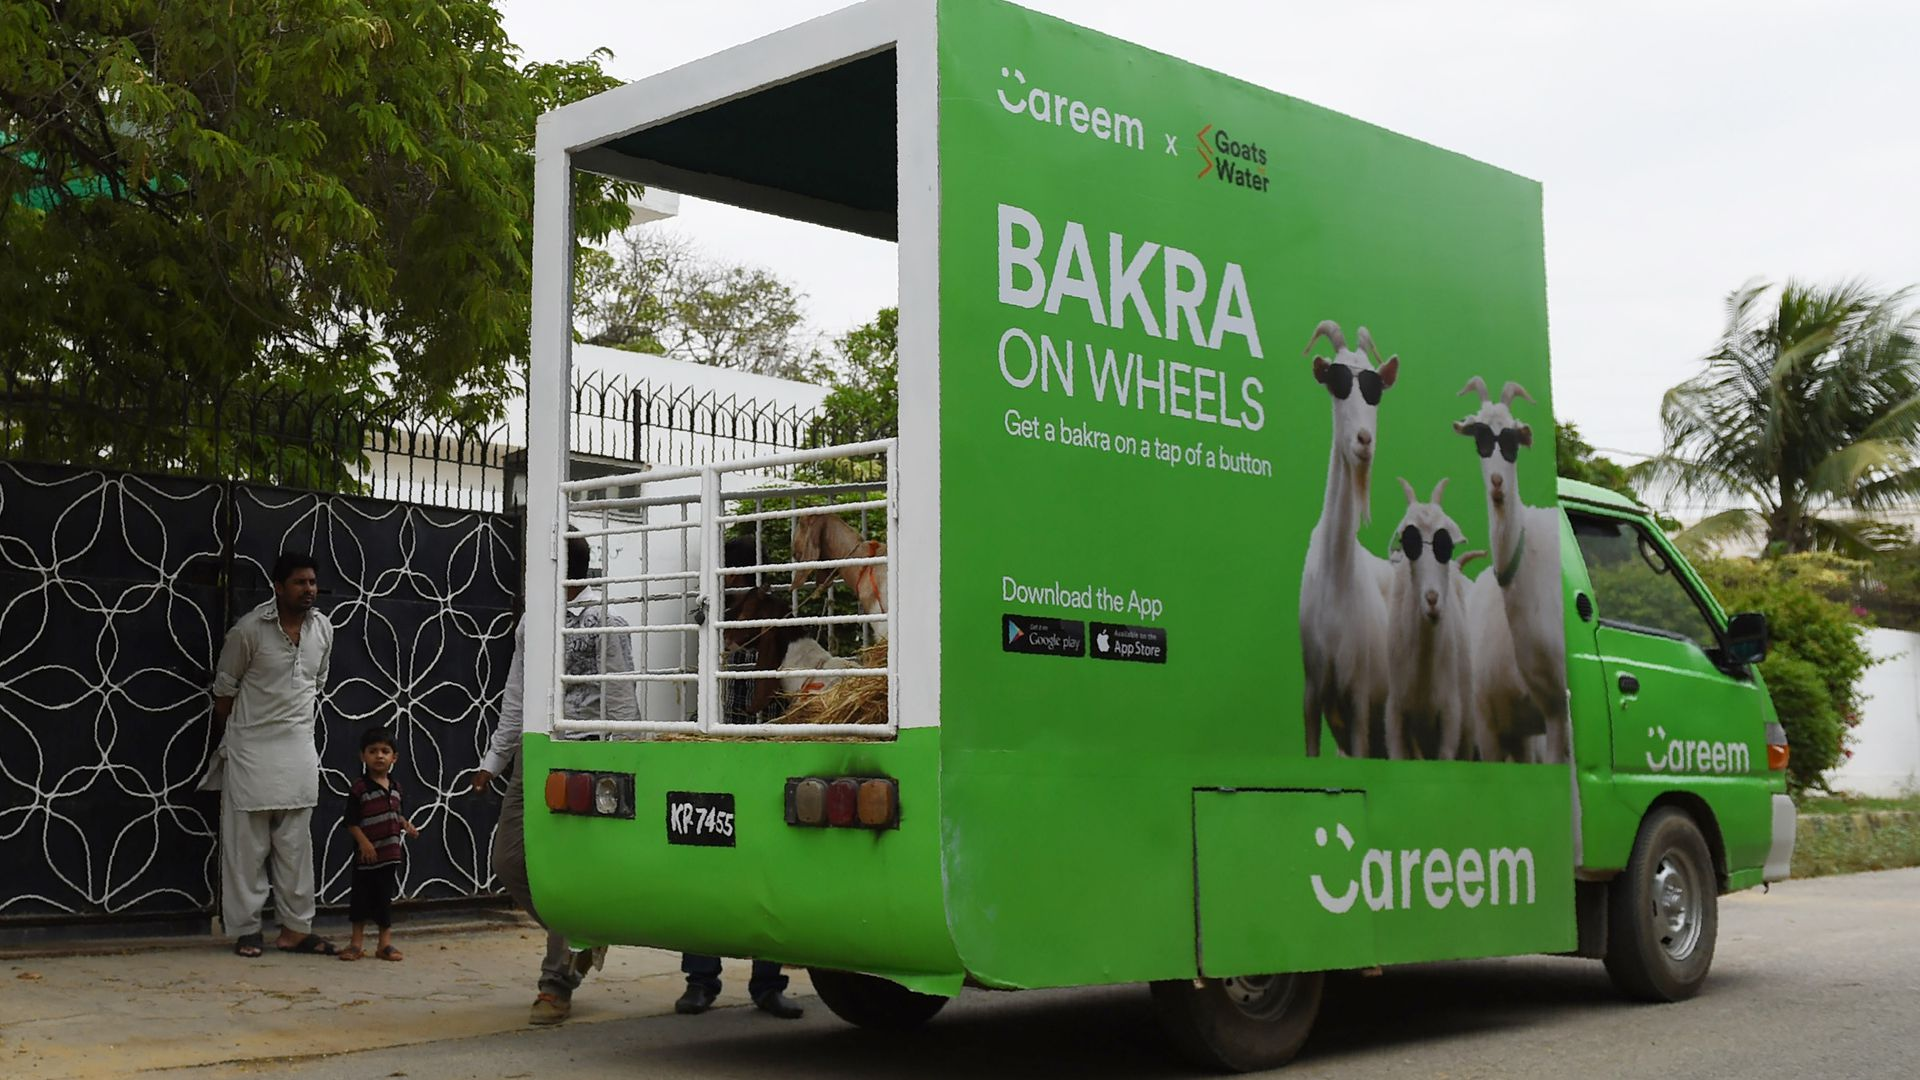 Careem's service 'Bakra on wheels' transports goats in a green truck